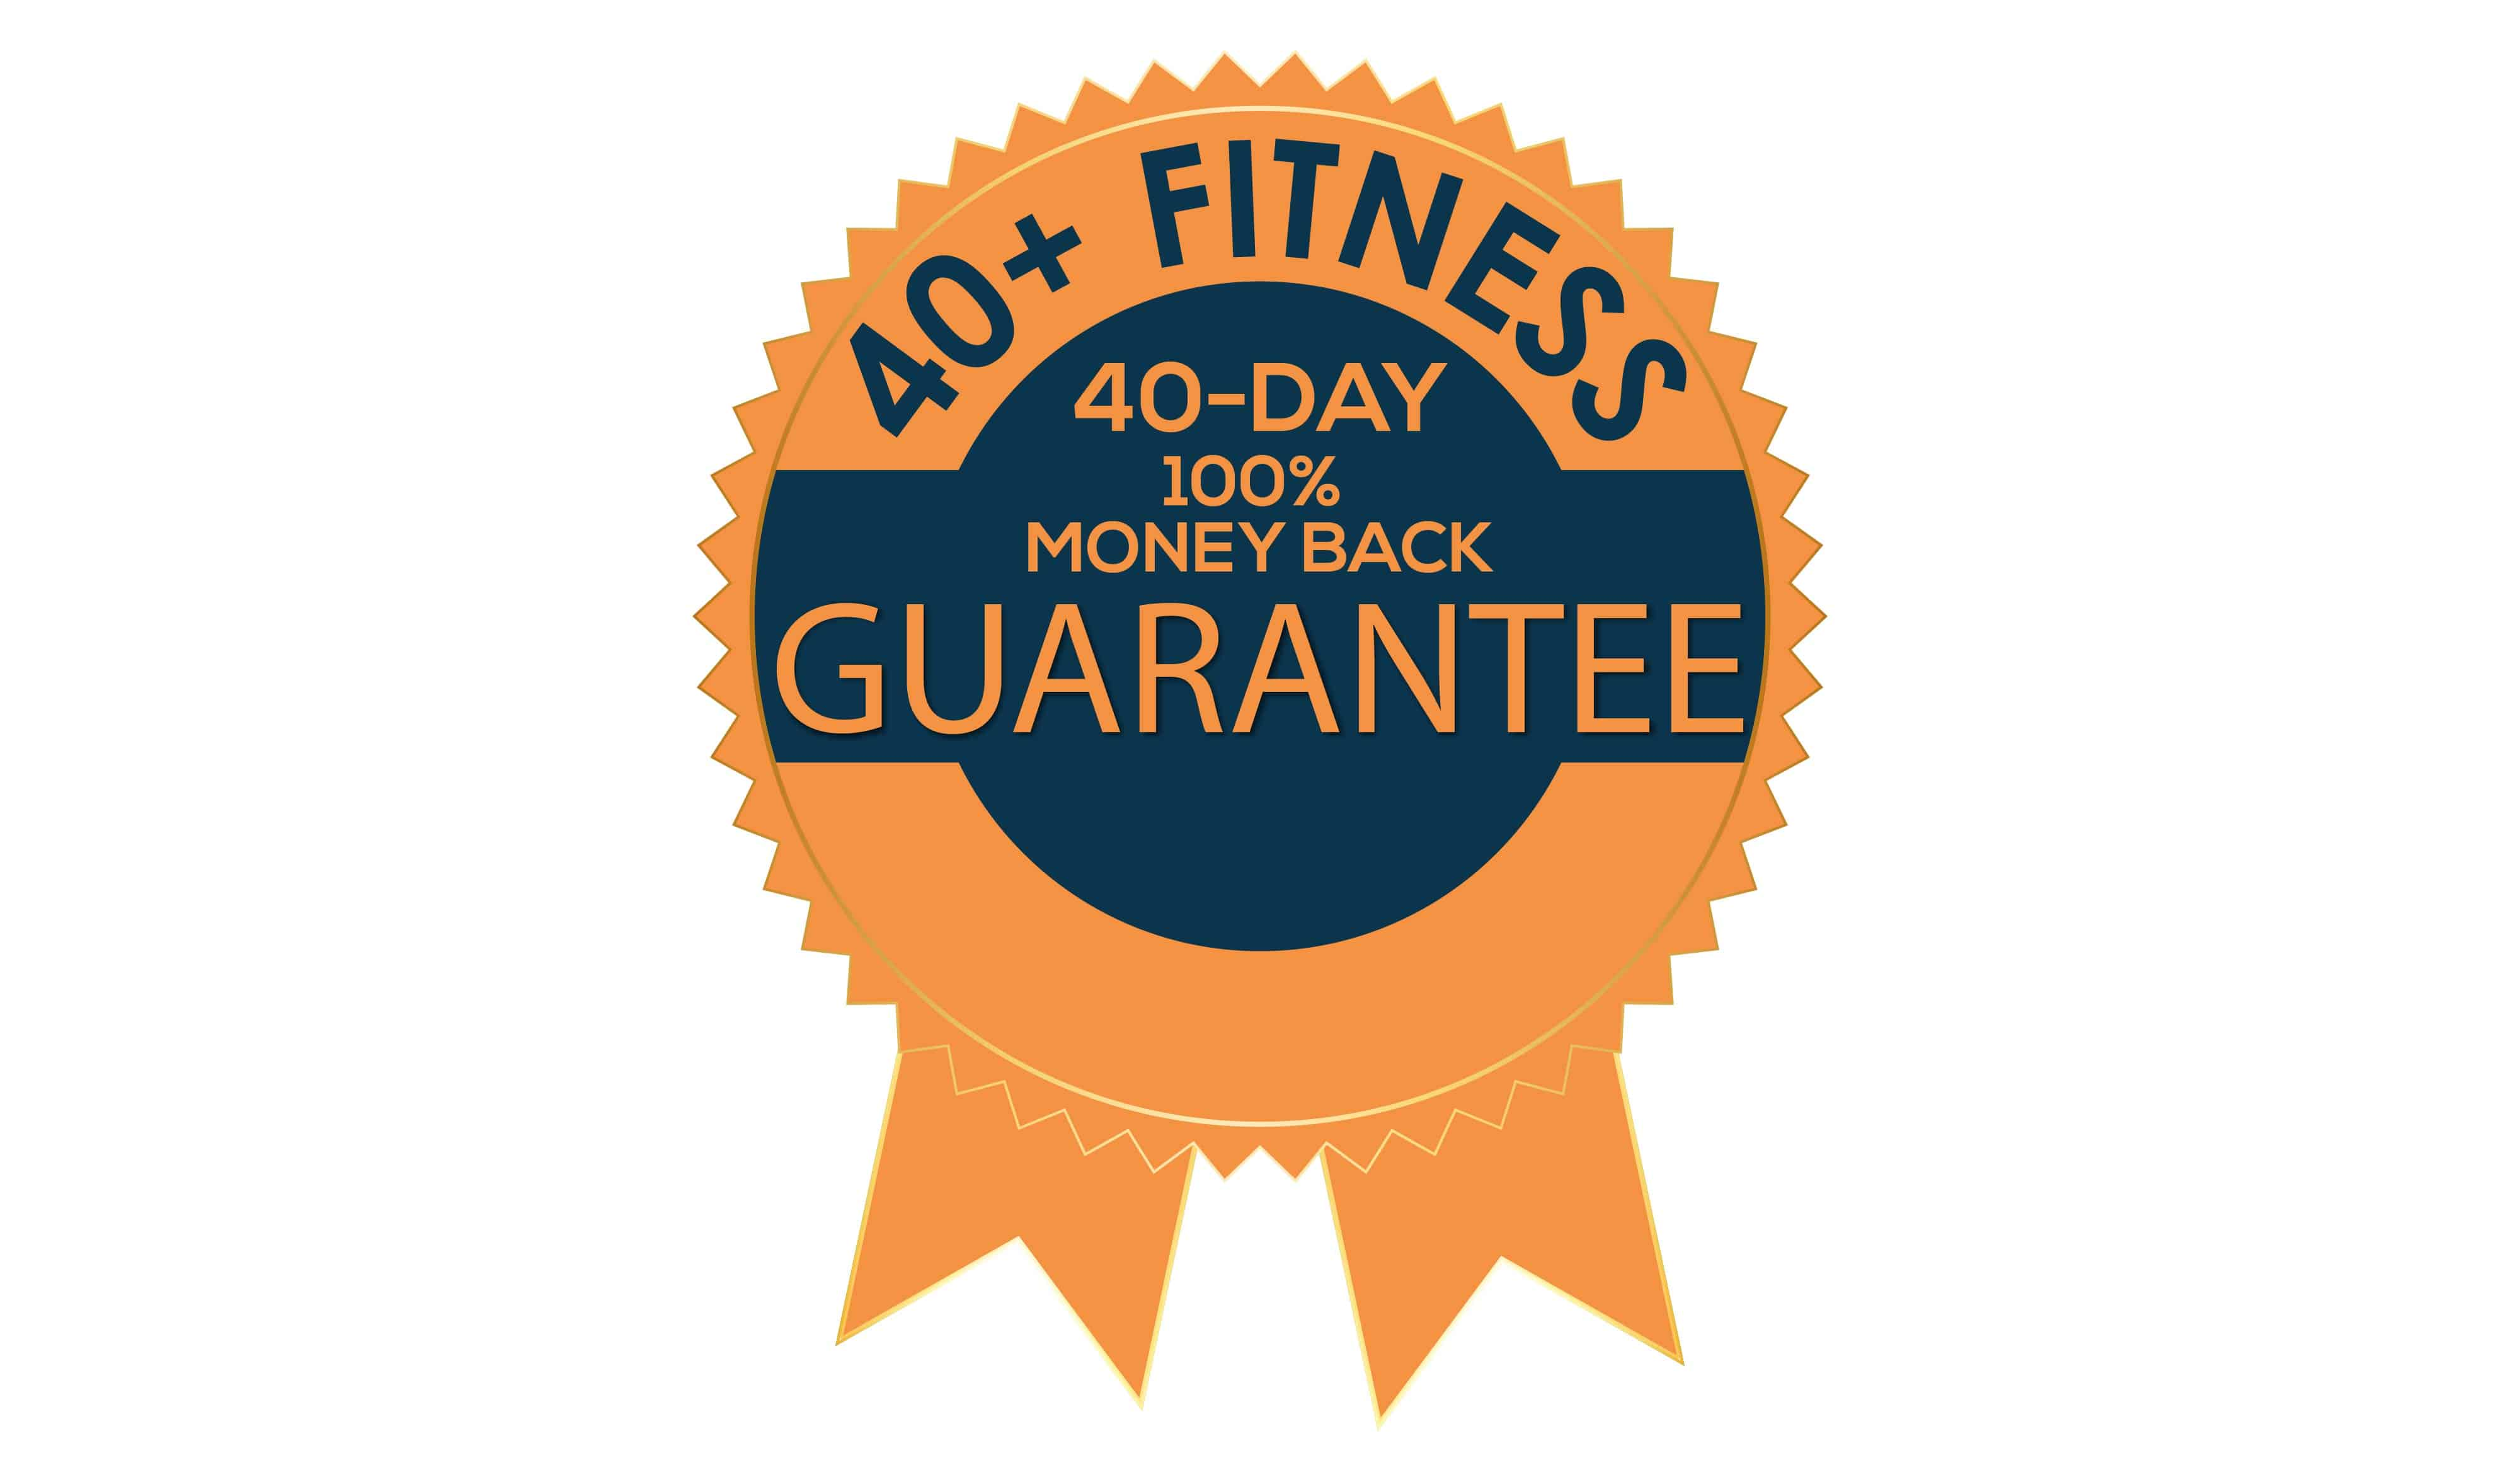 40-Day-Guarantee